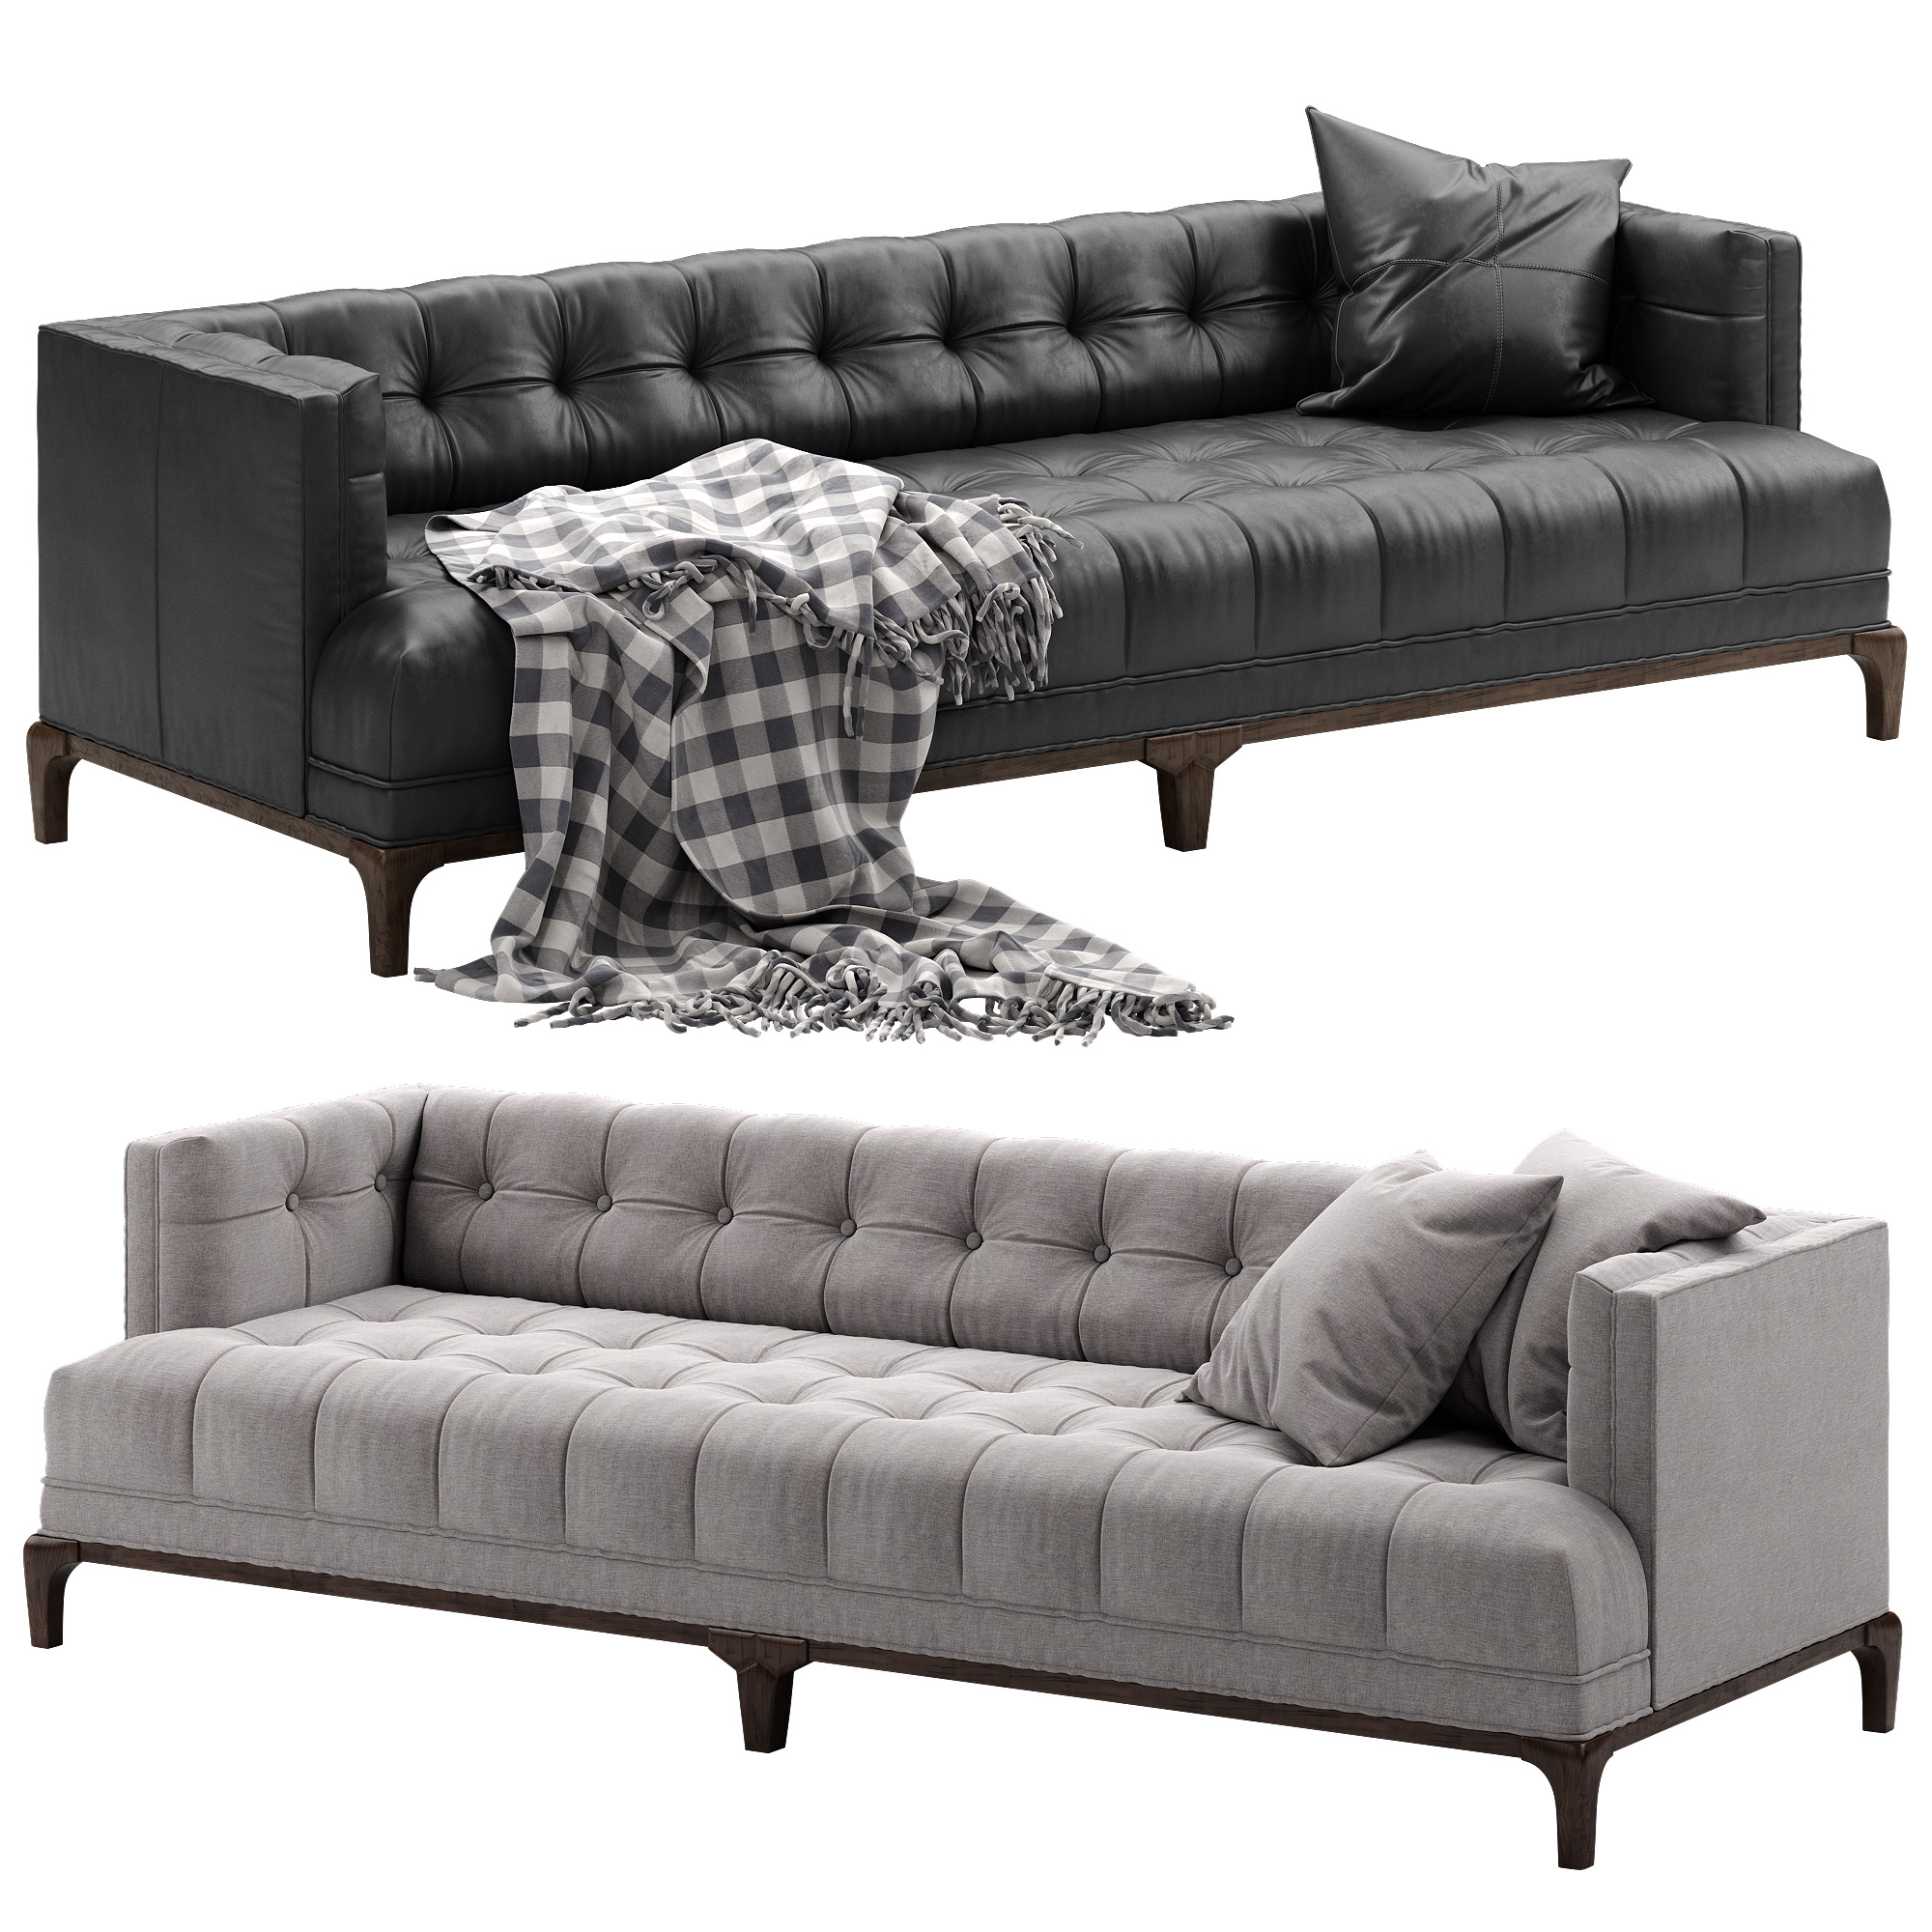 Admirable Crate And Barrel Dylan Sofa Gmtry Best Dining Table And Chair Ideas Images Gmtryco